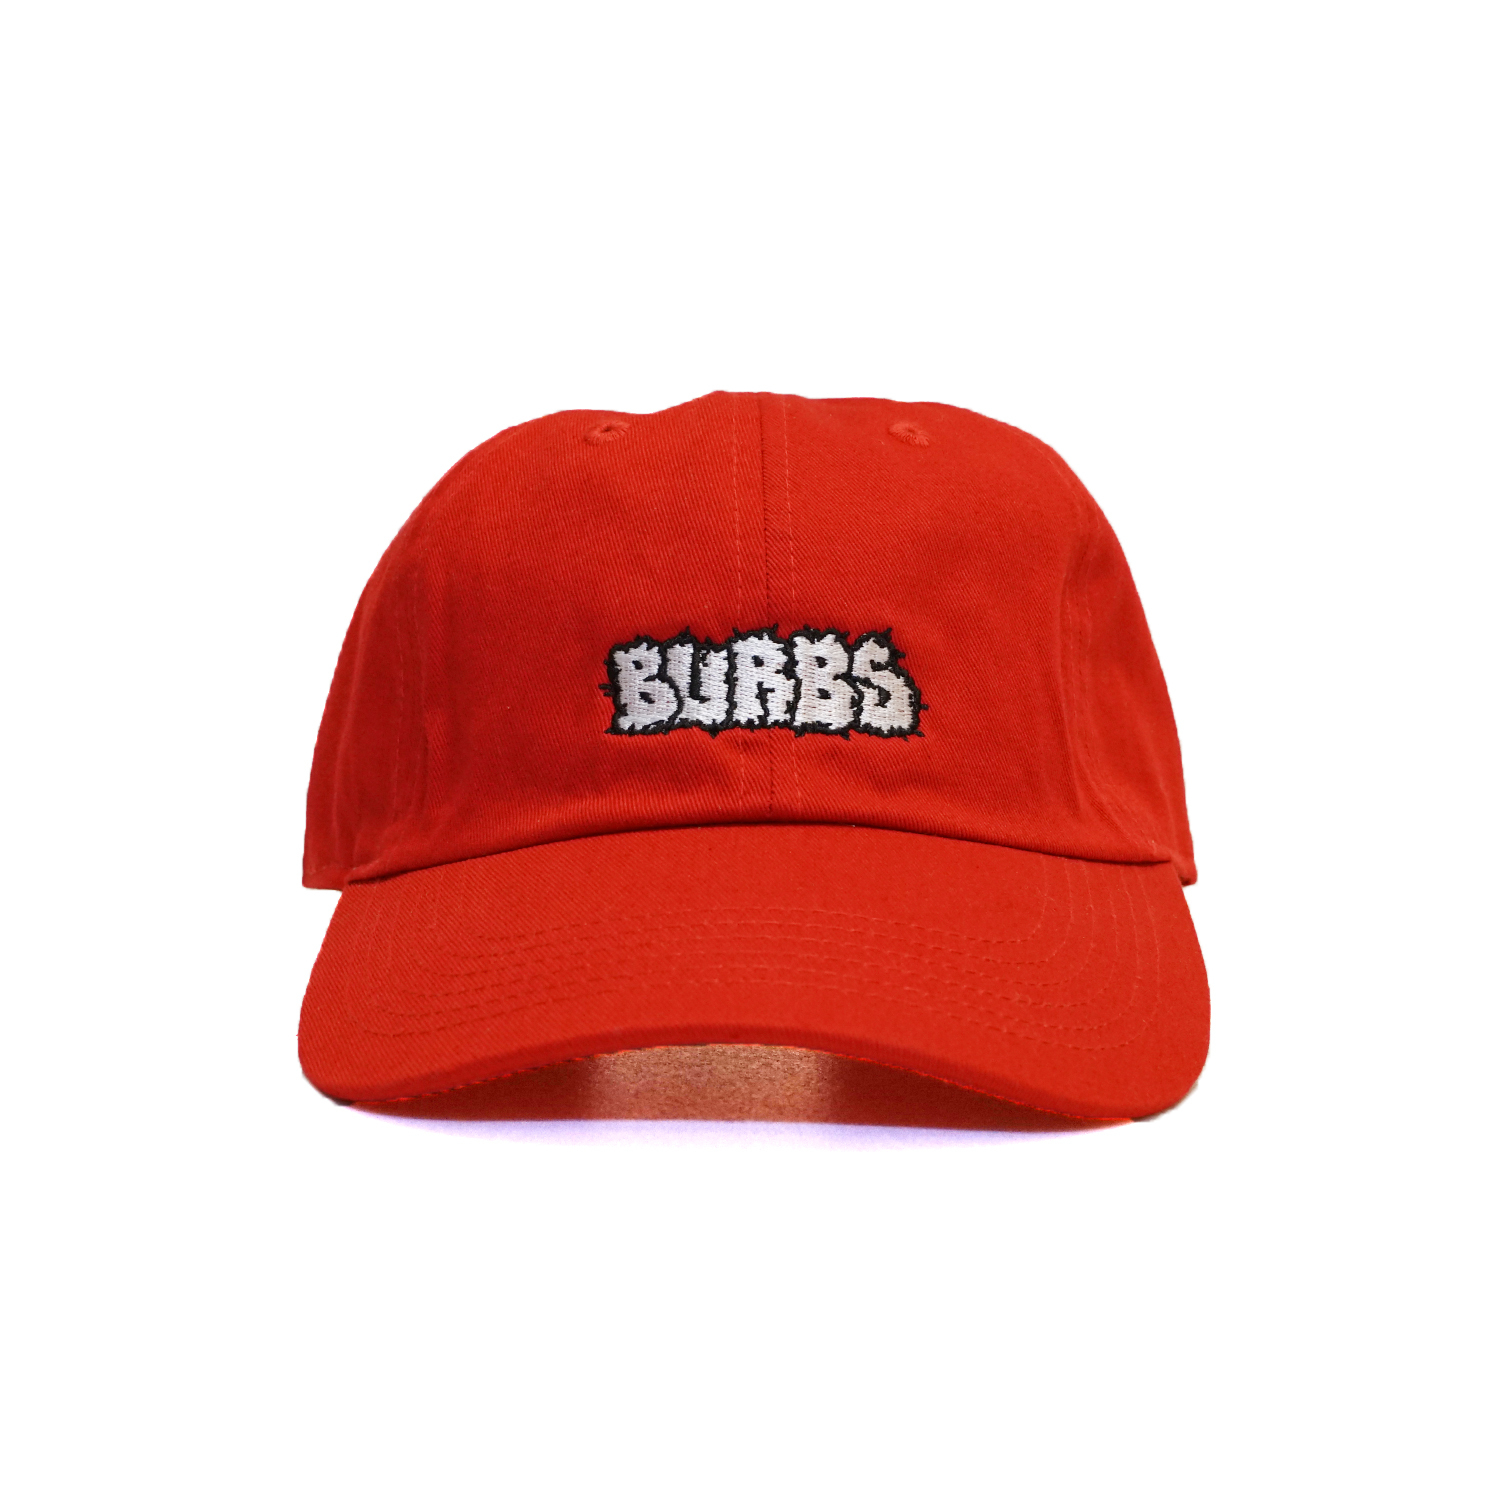 WWWTYO x SHINO/BURBS BALL CAP (RED)